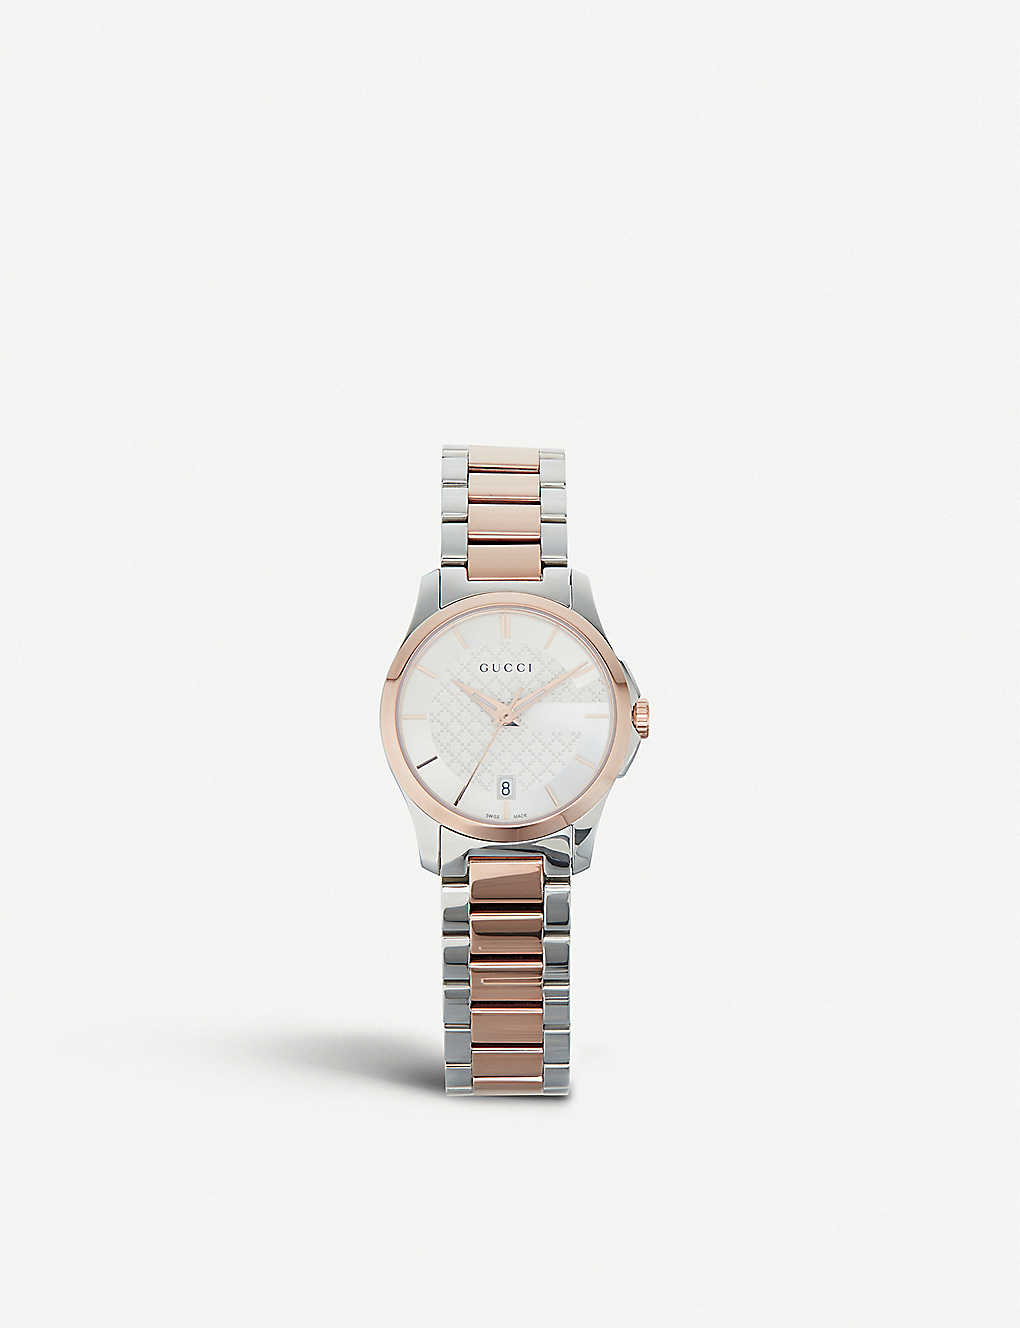 61659c4e2c GUCCI - YA126564 G-Timeless stainless steel and rose gold-toned ...